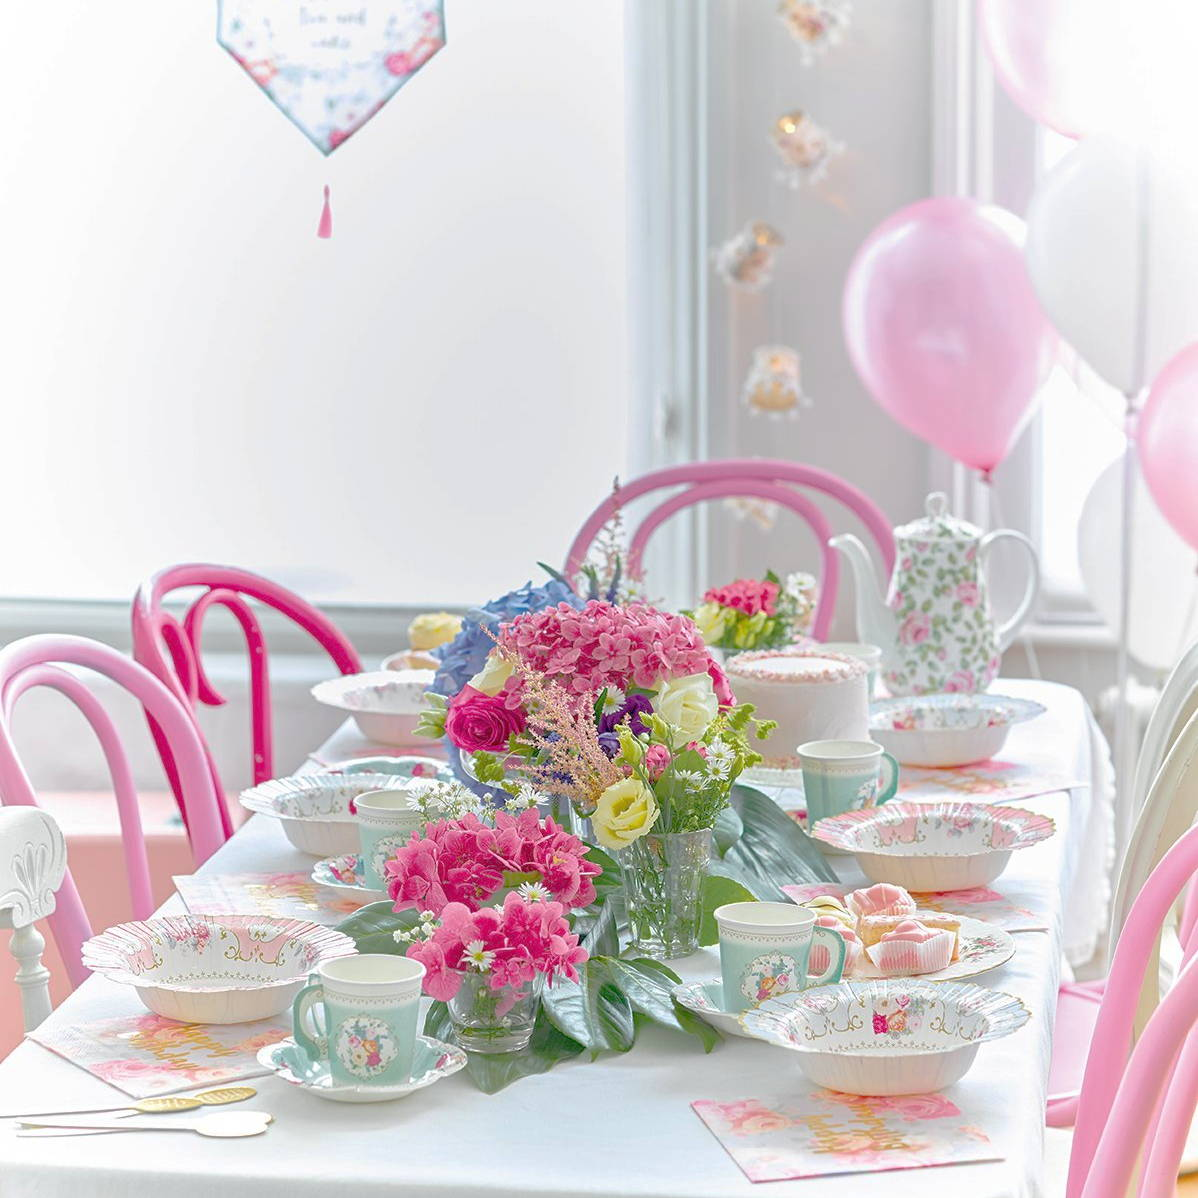 A photo of a baby shower party table laid out with the Truly Scrumptious baby shower range including floral party bowls, disposable party tea cups, and napkins